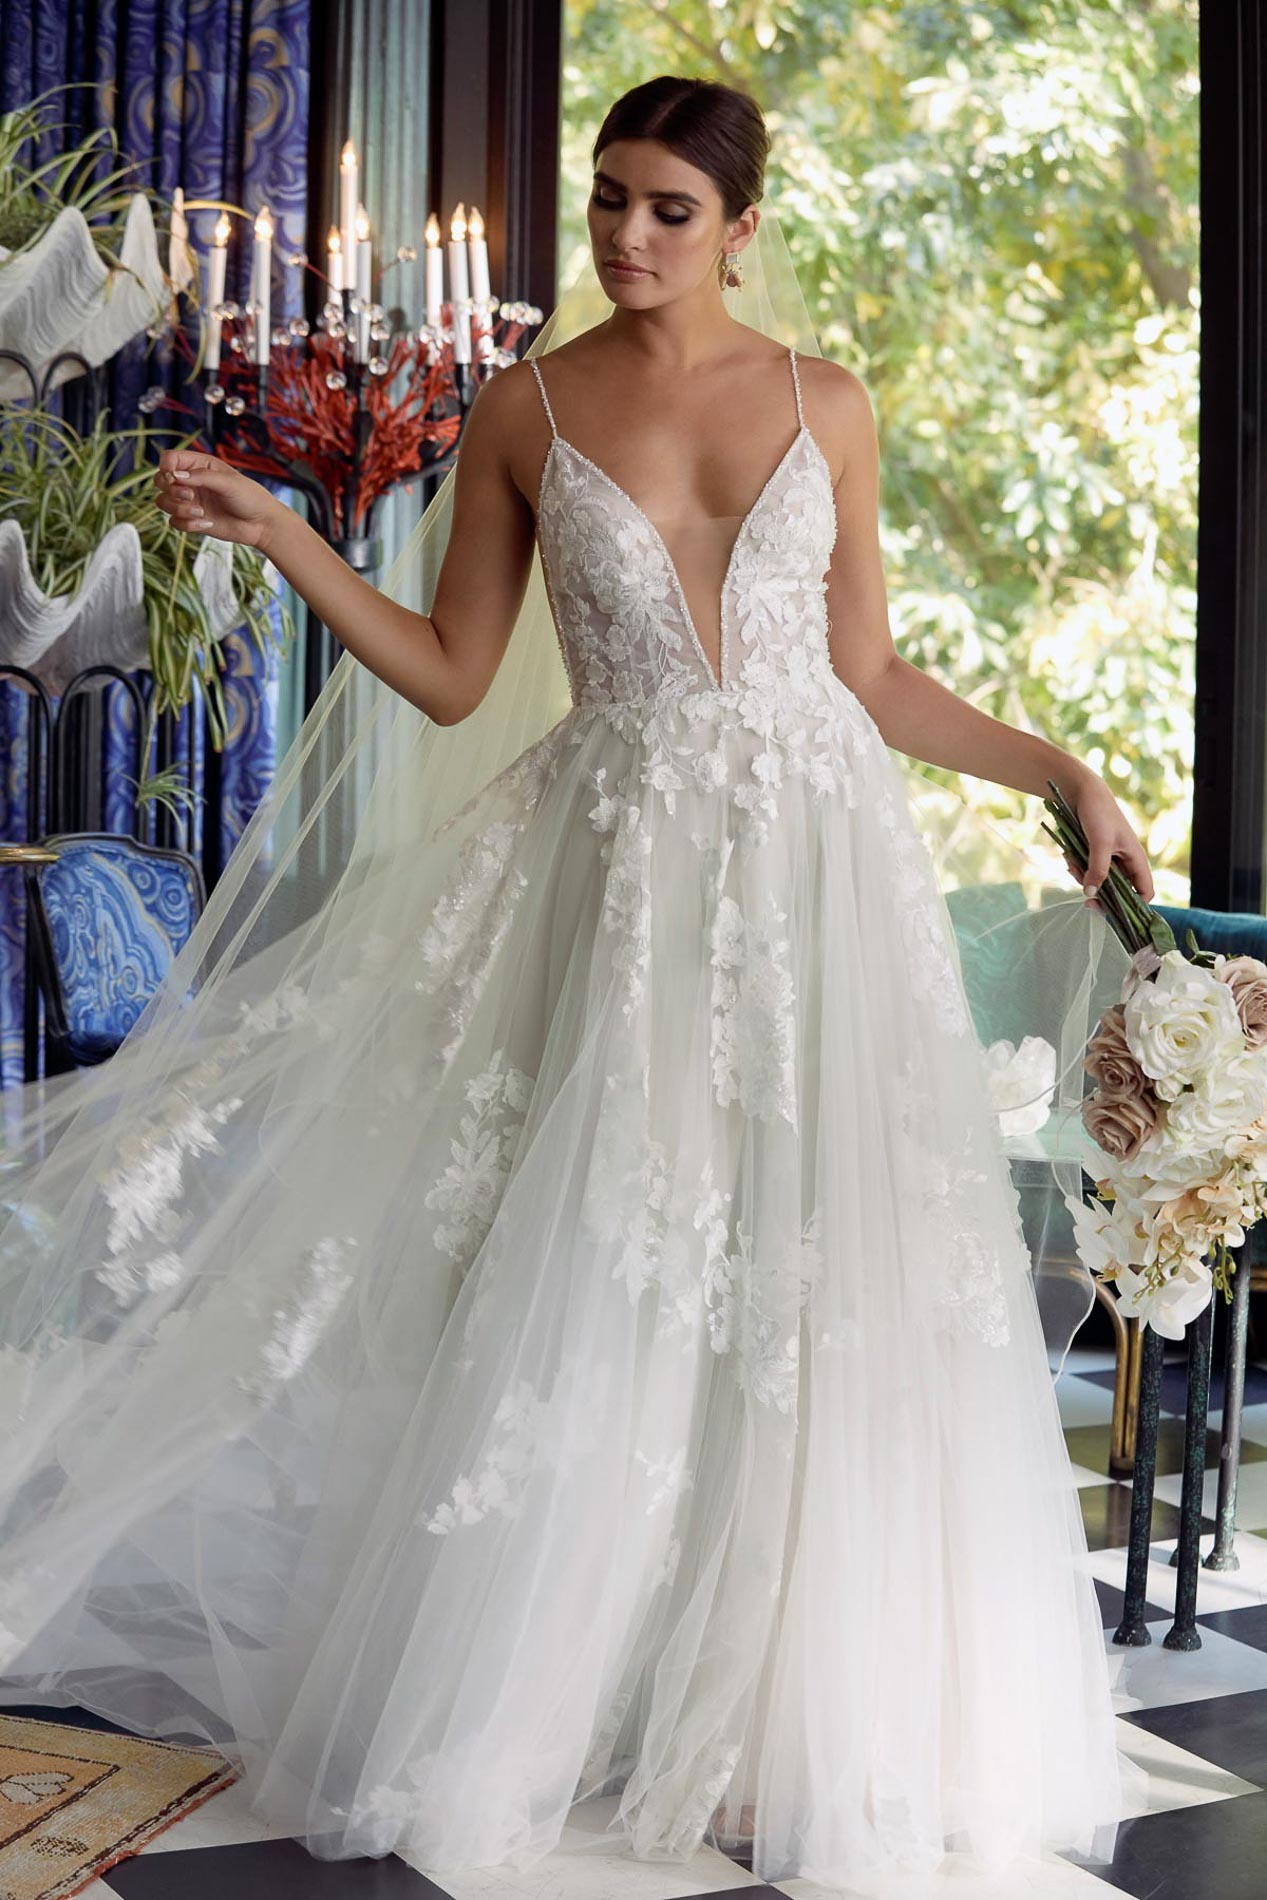 Feminine wedding dress, Cabinet of Wonders, an exclusive Watters WTOO event